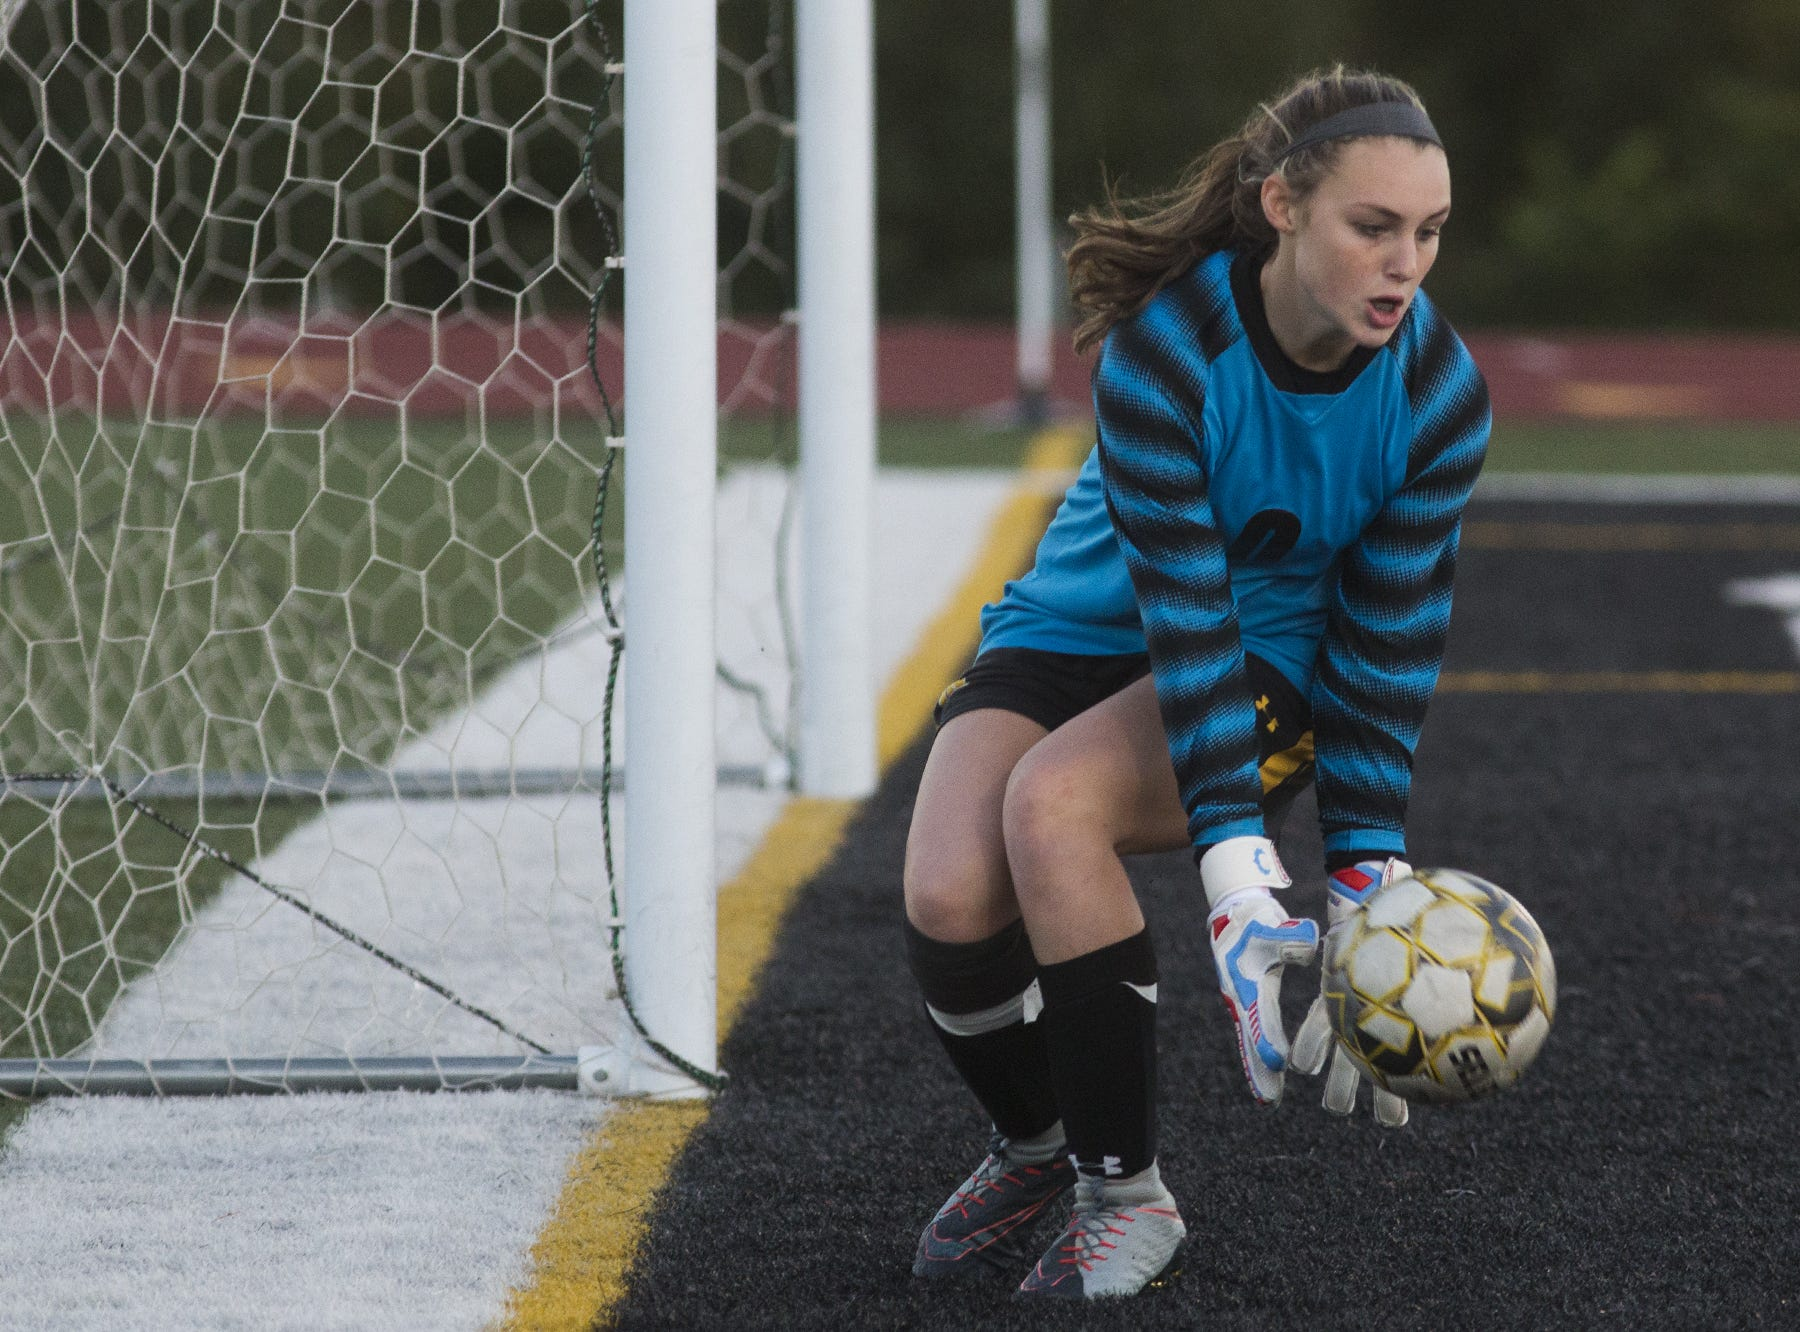 Red Lion goalkeeper Kylyn McIntire makes a save. Central York defeats Red Lion 1-0 in the YAIAA girls' soccer championship game at Northeastern High School in Manchester, Saturday, October 20, 2018.